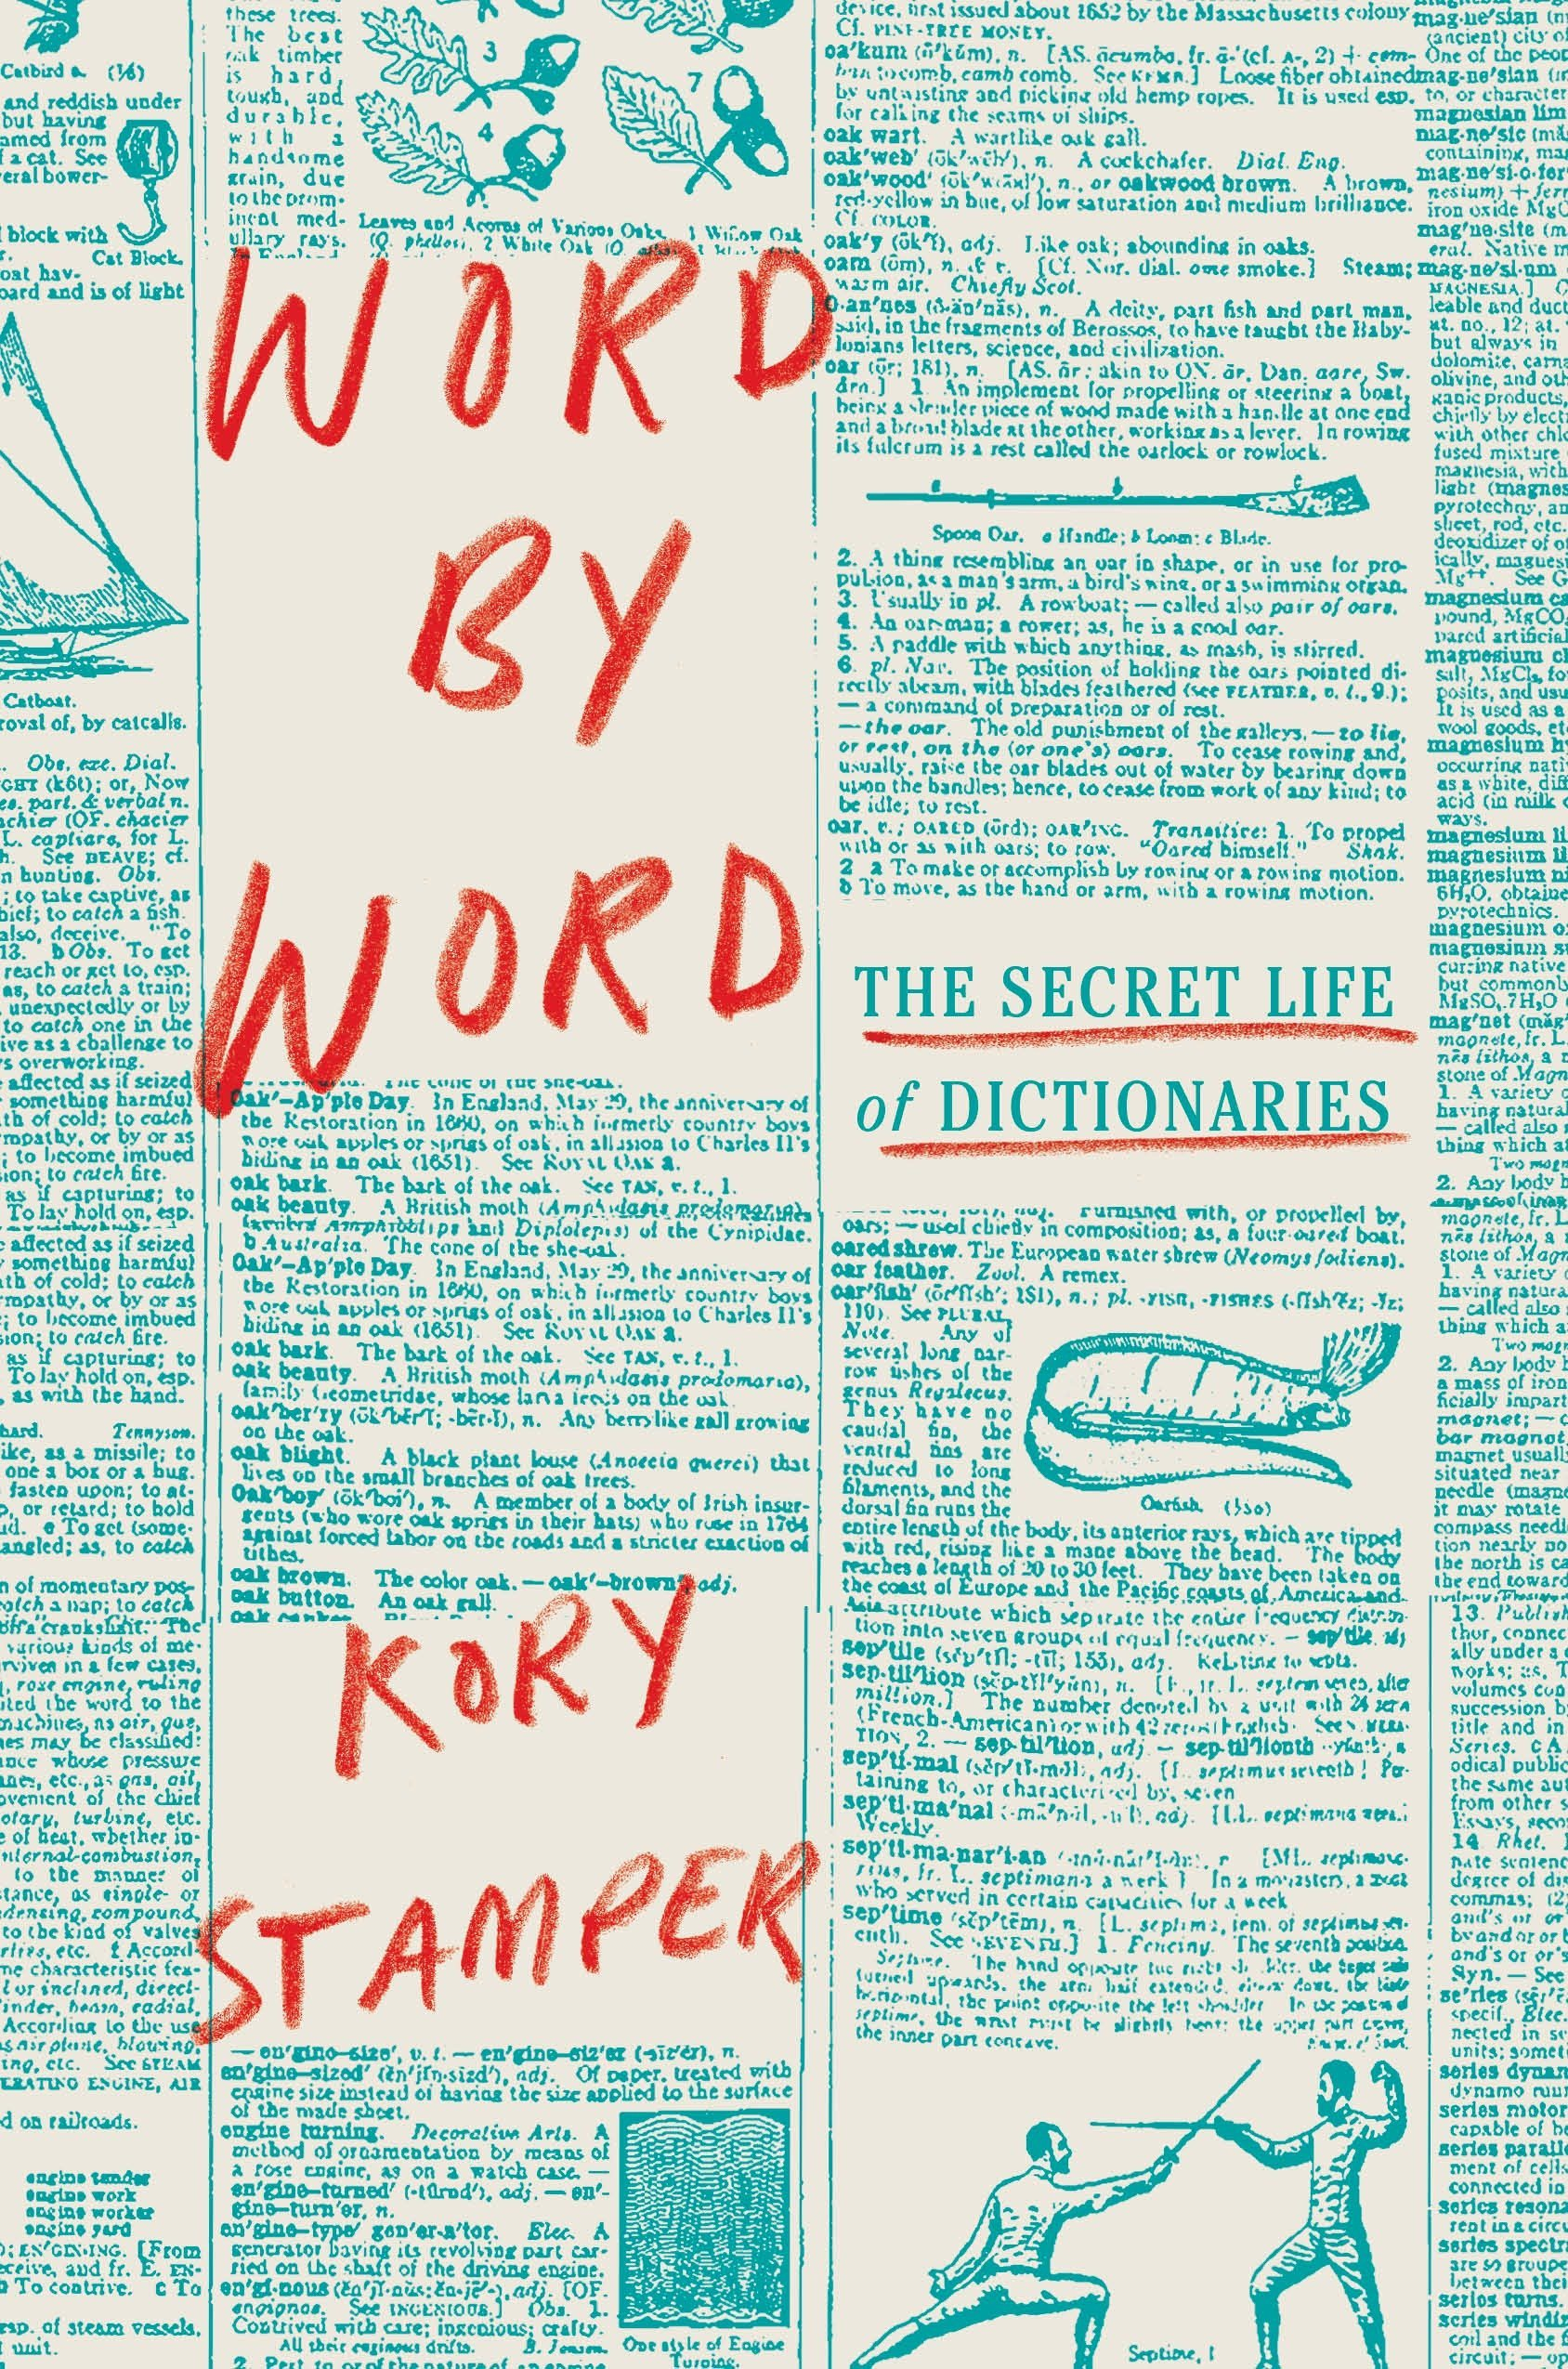 word_by_word-Kory_stamper